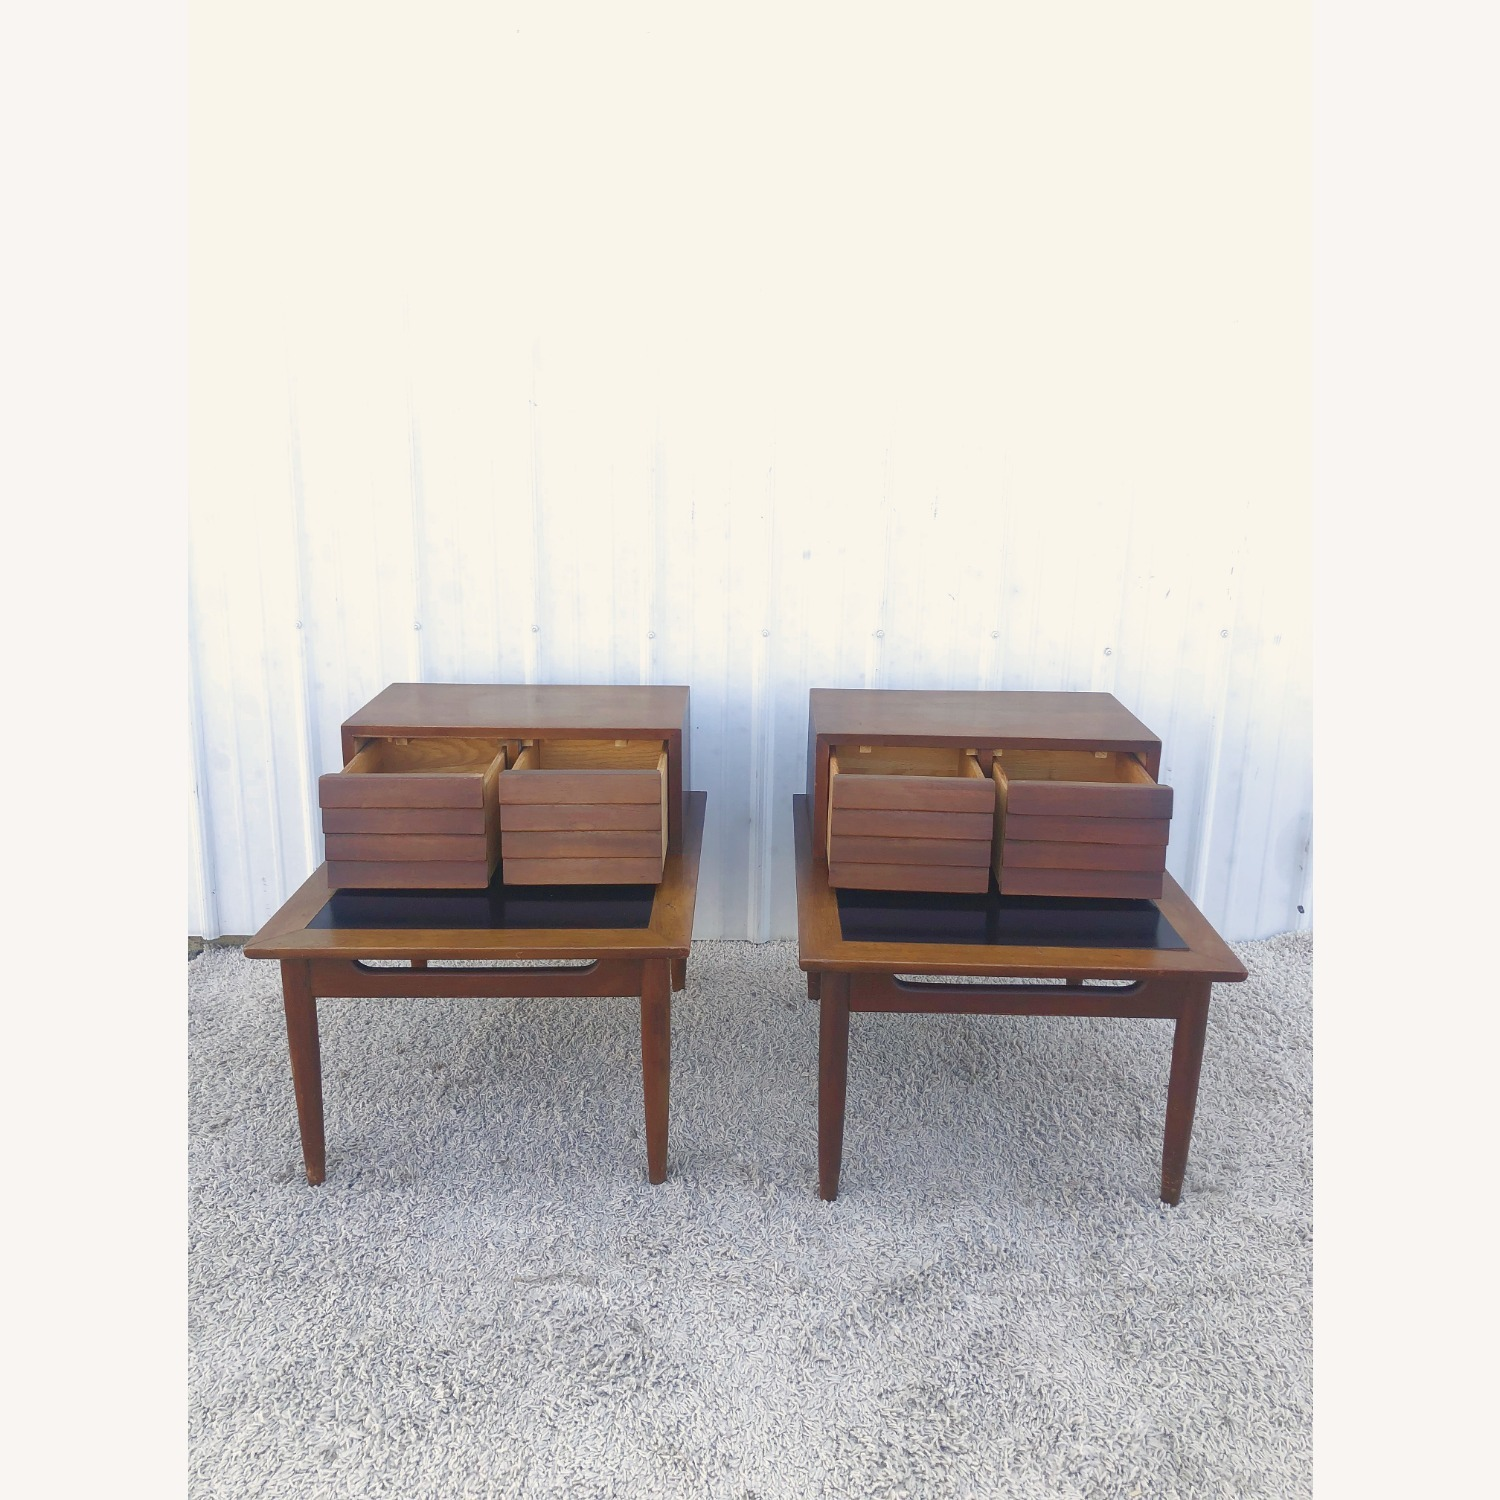 Pair Two Drawer MCM End Tables by Martinsvlle - image-10